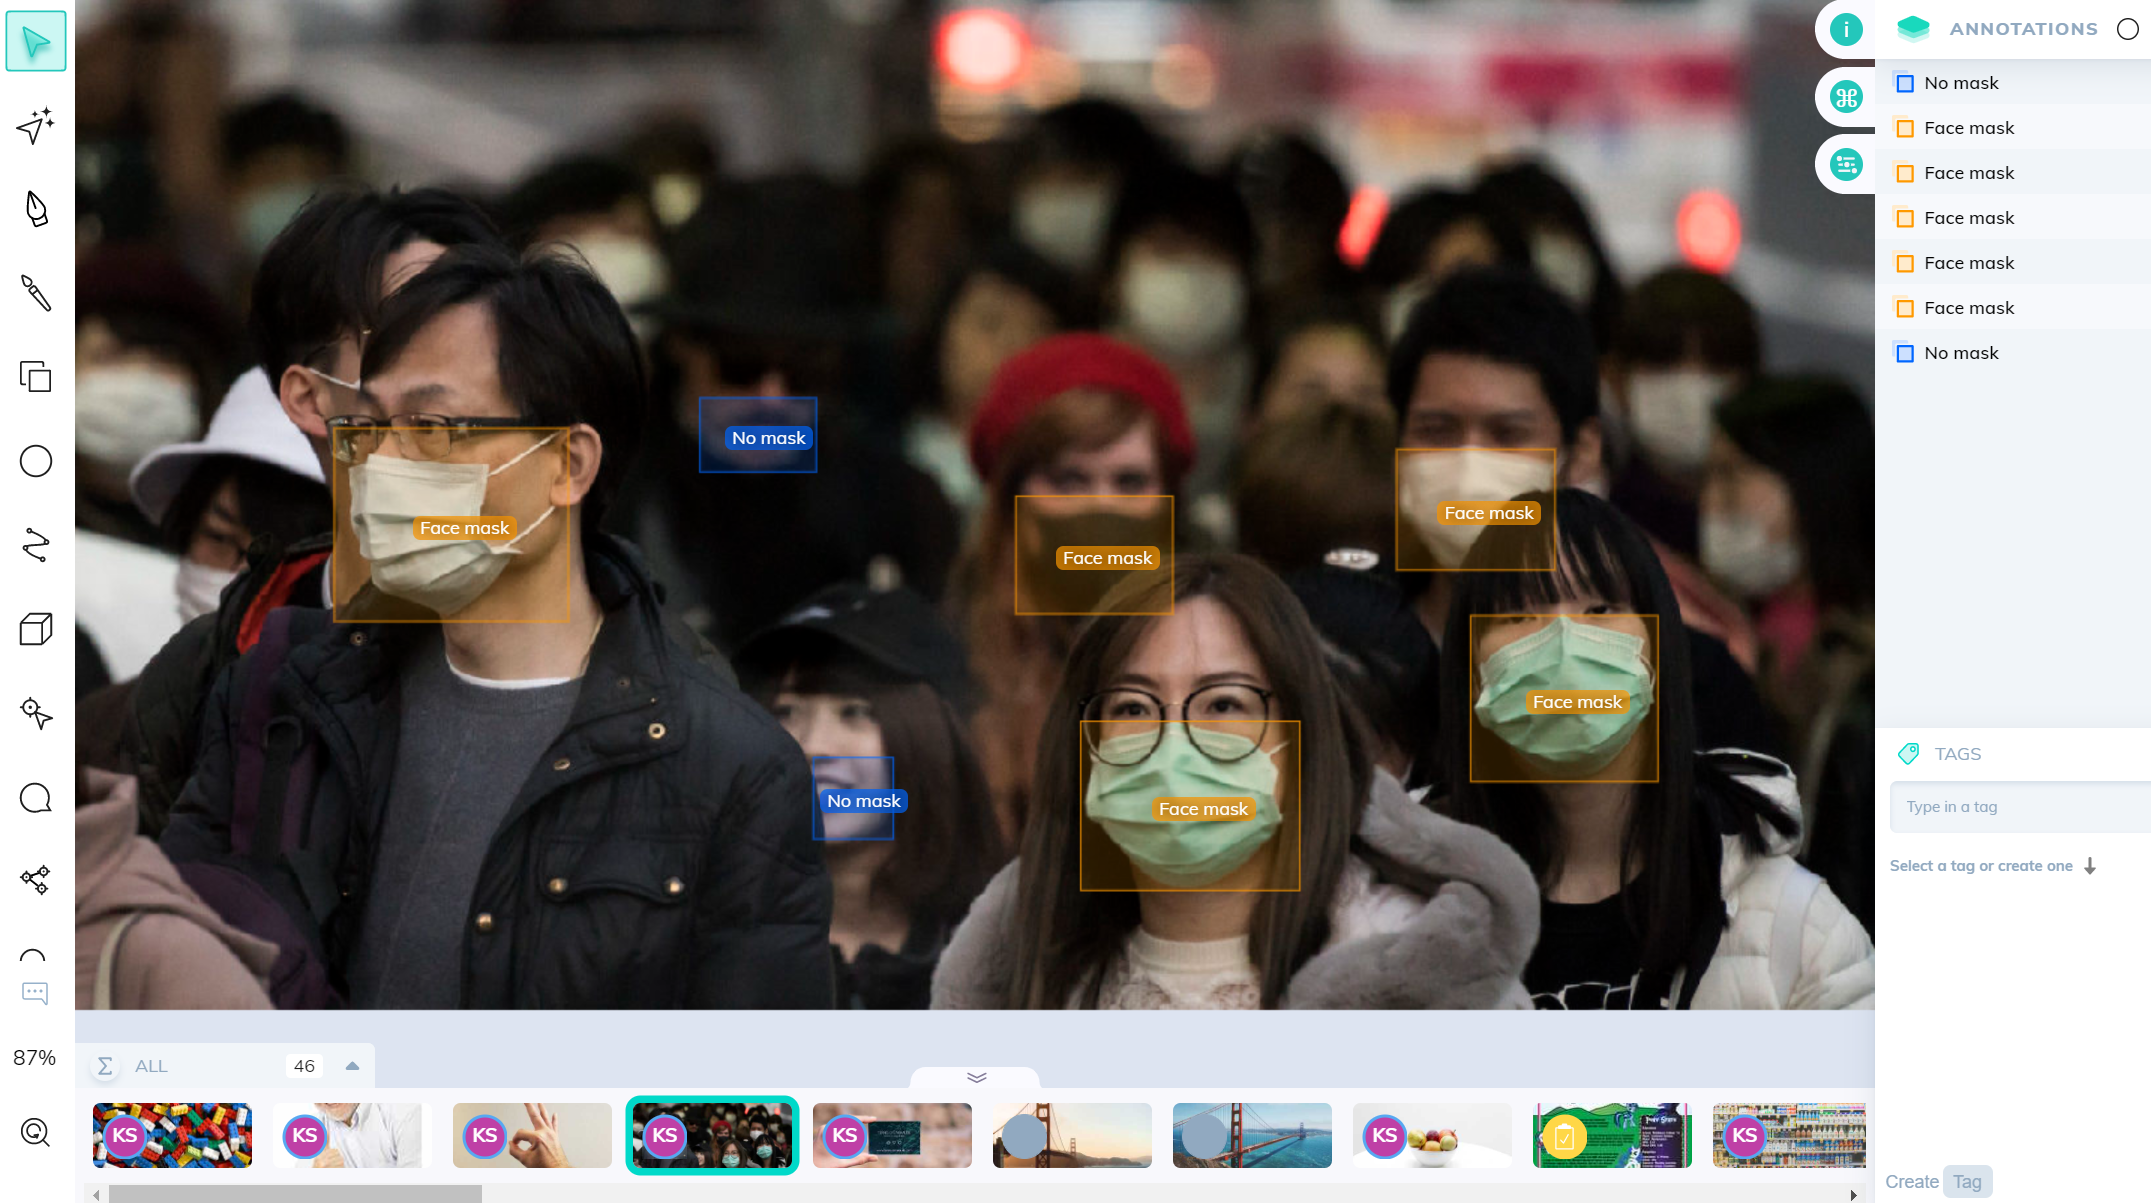 Face mask detection in a crowd using V7